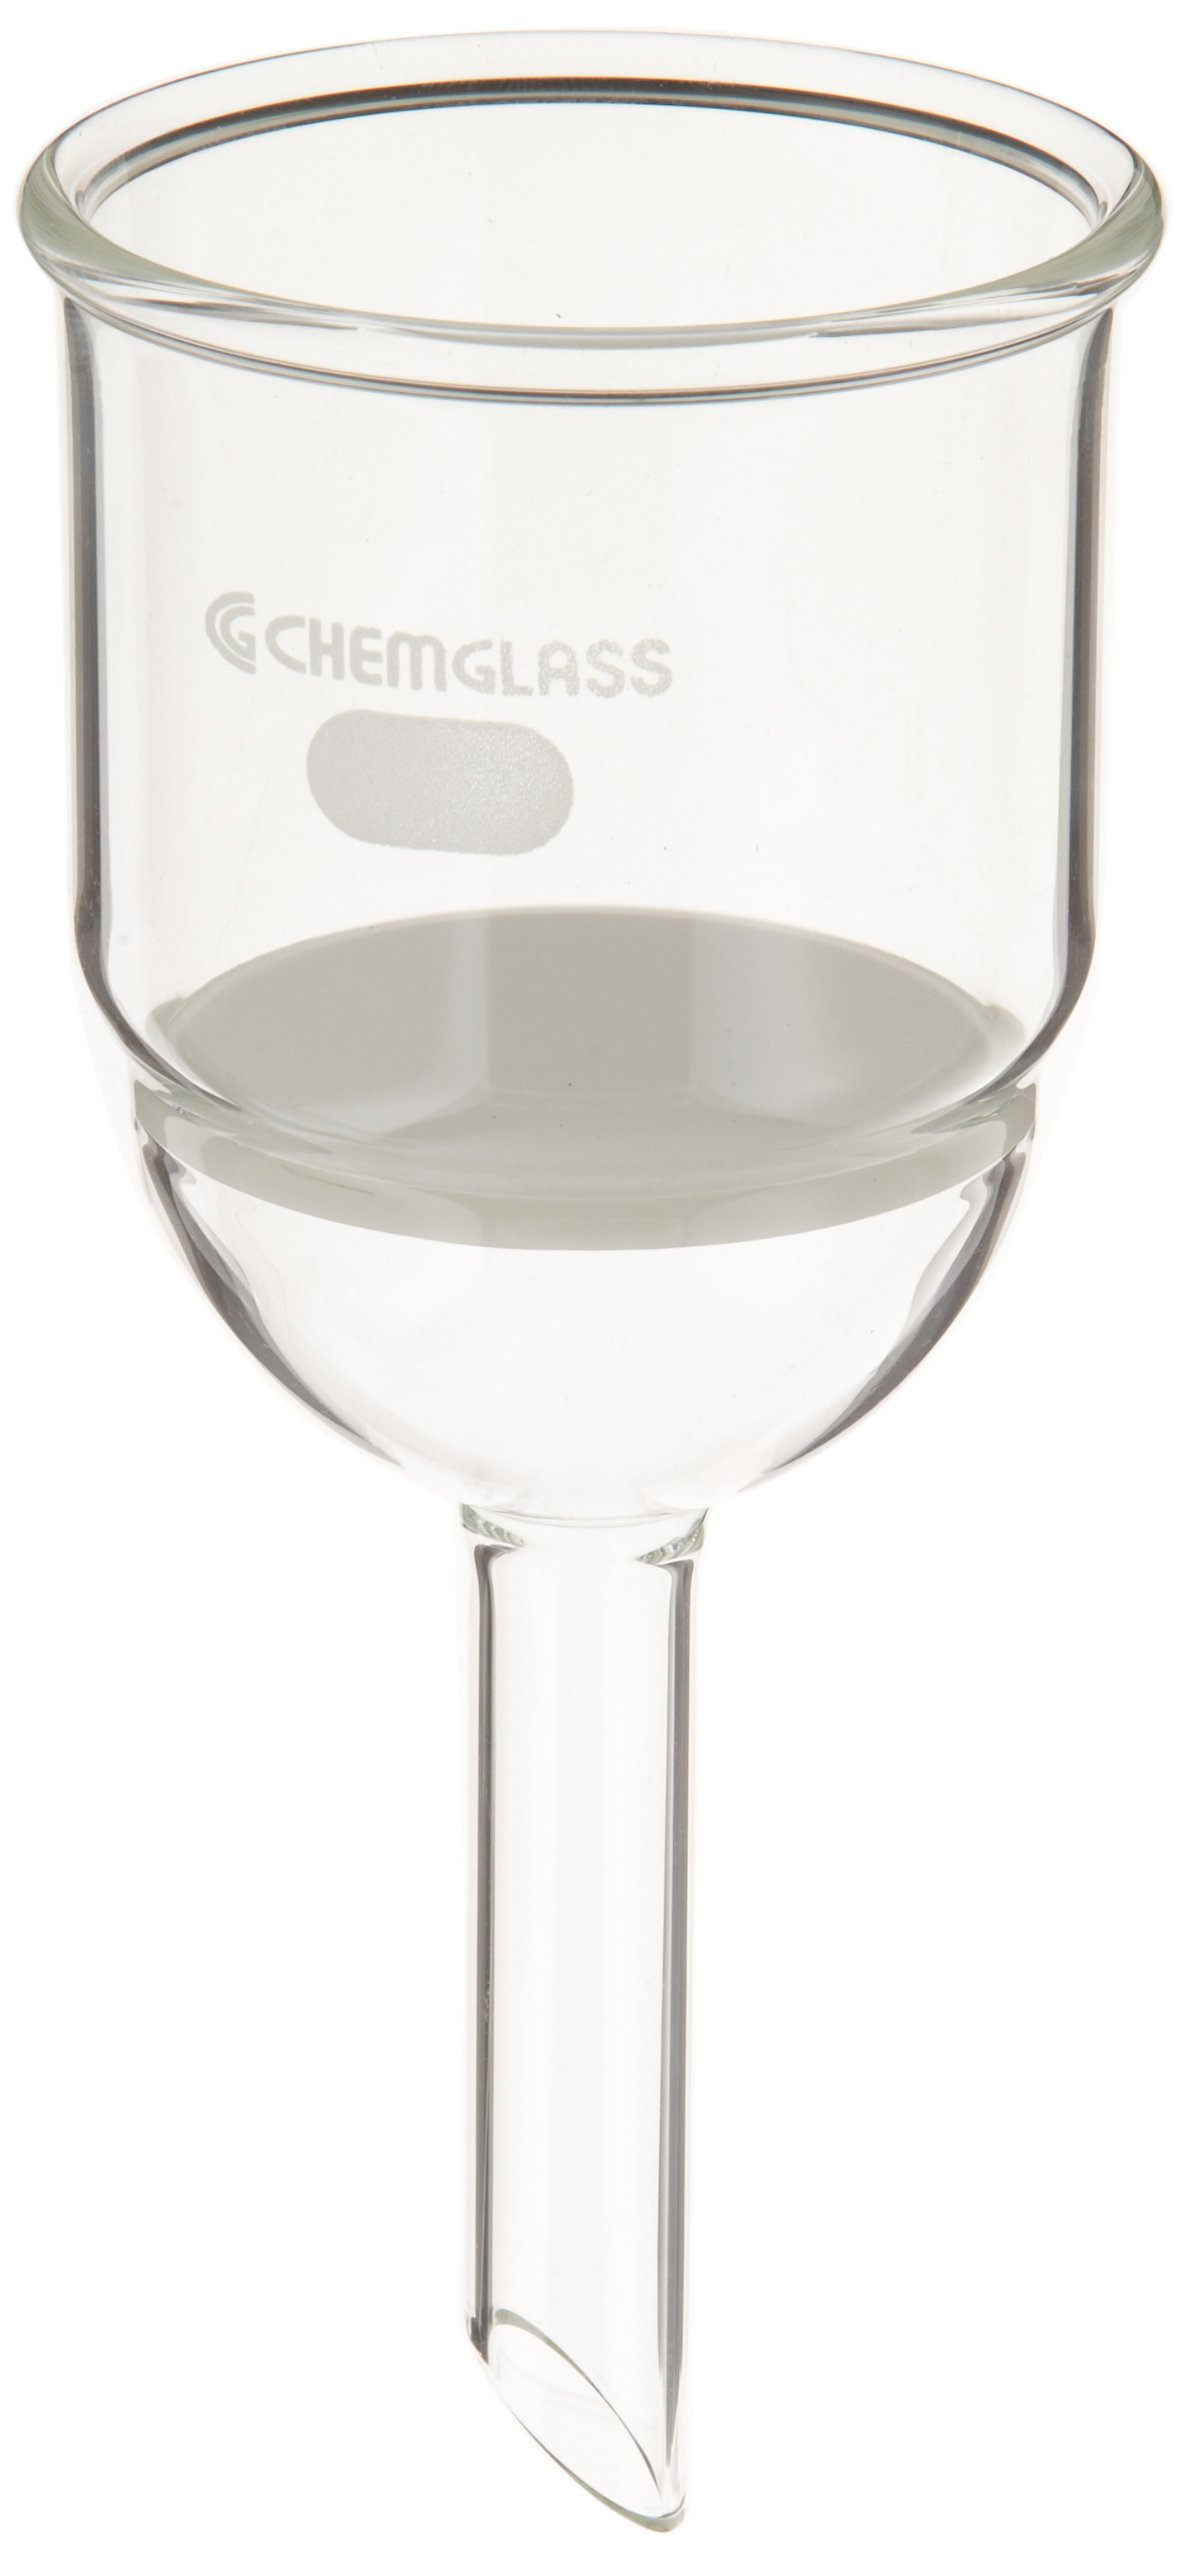 Chemglass CG-1402-20 Glass Buchner Filtering Funnel with Fine Frit, 150mL Capacity